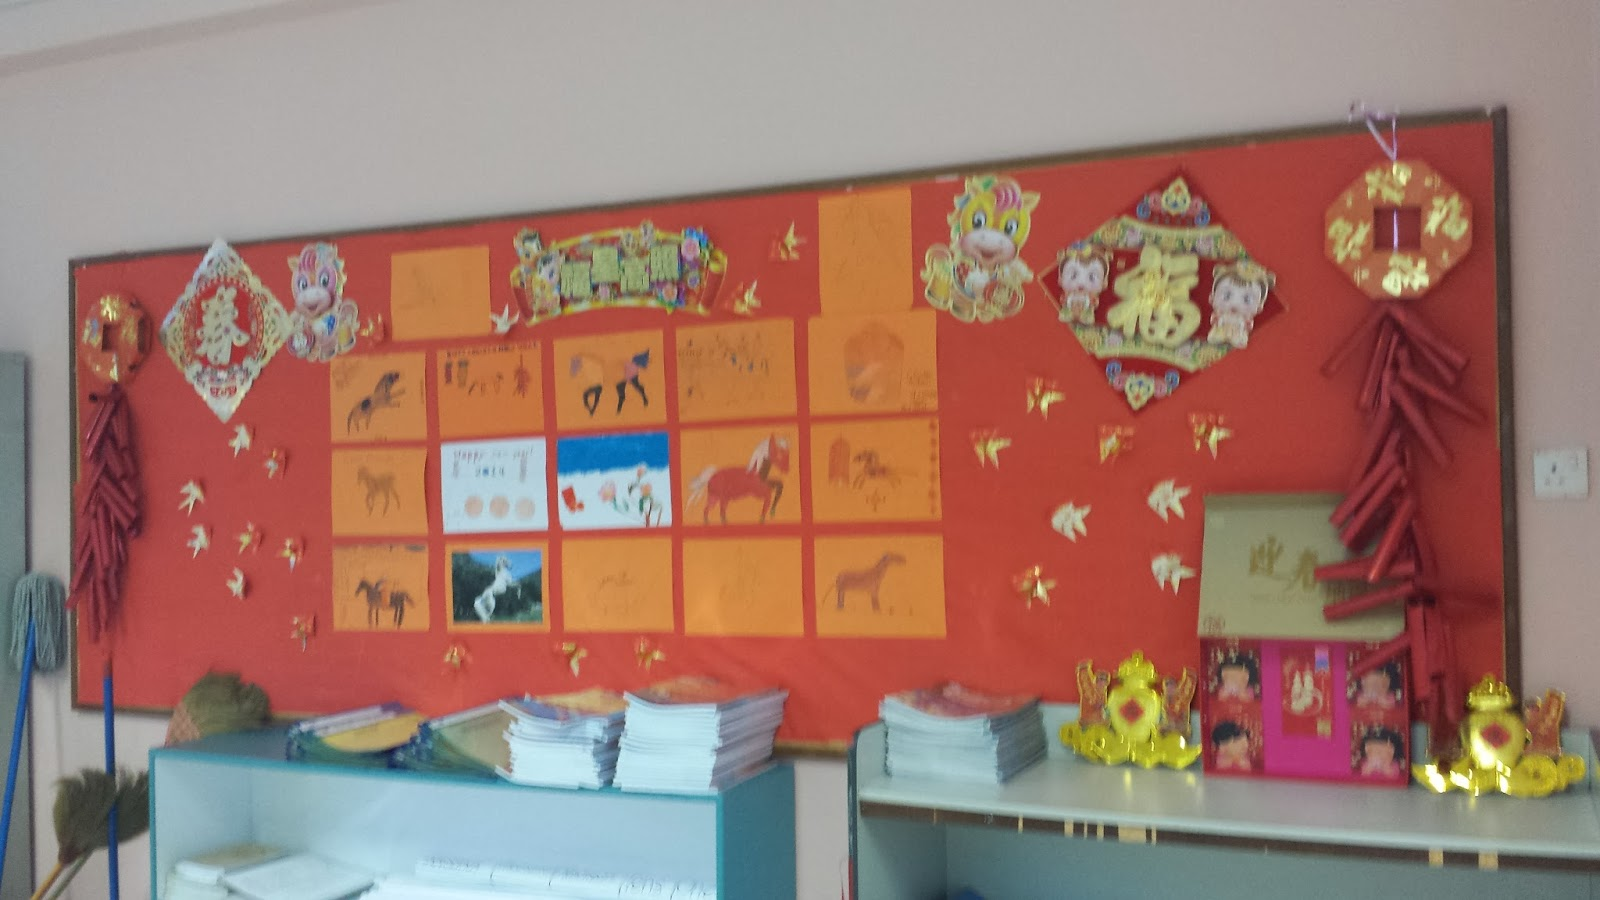 MJS 4 Compassion 2014: Chinese New Year Classroom decoration